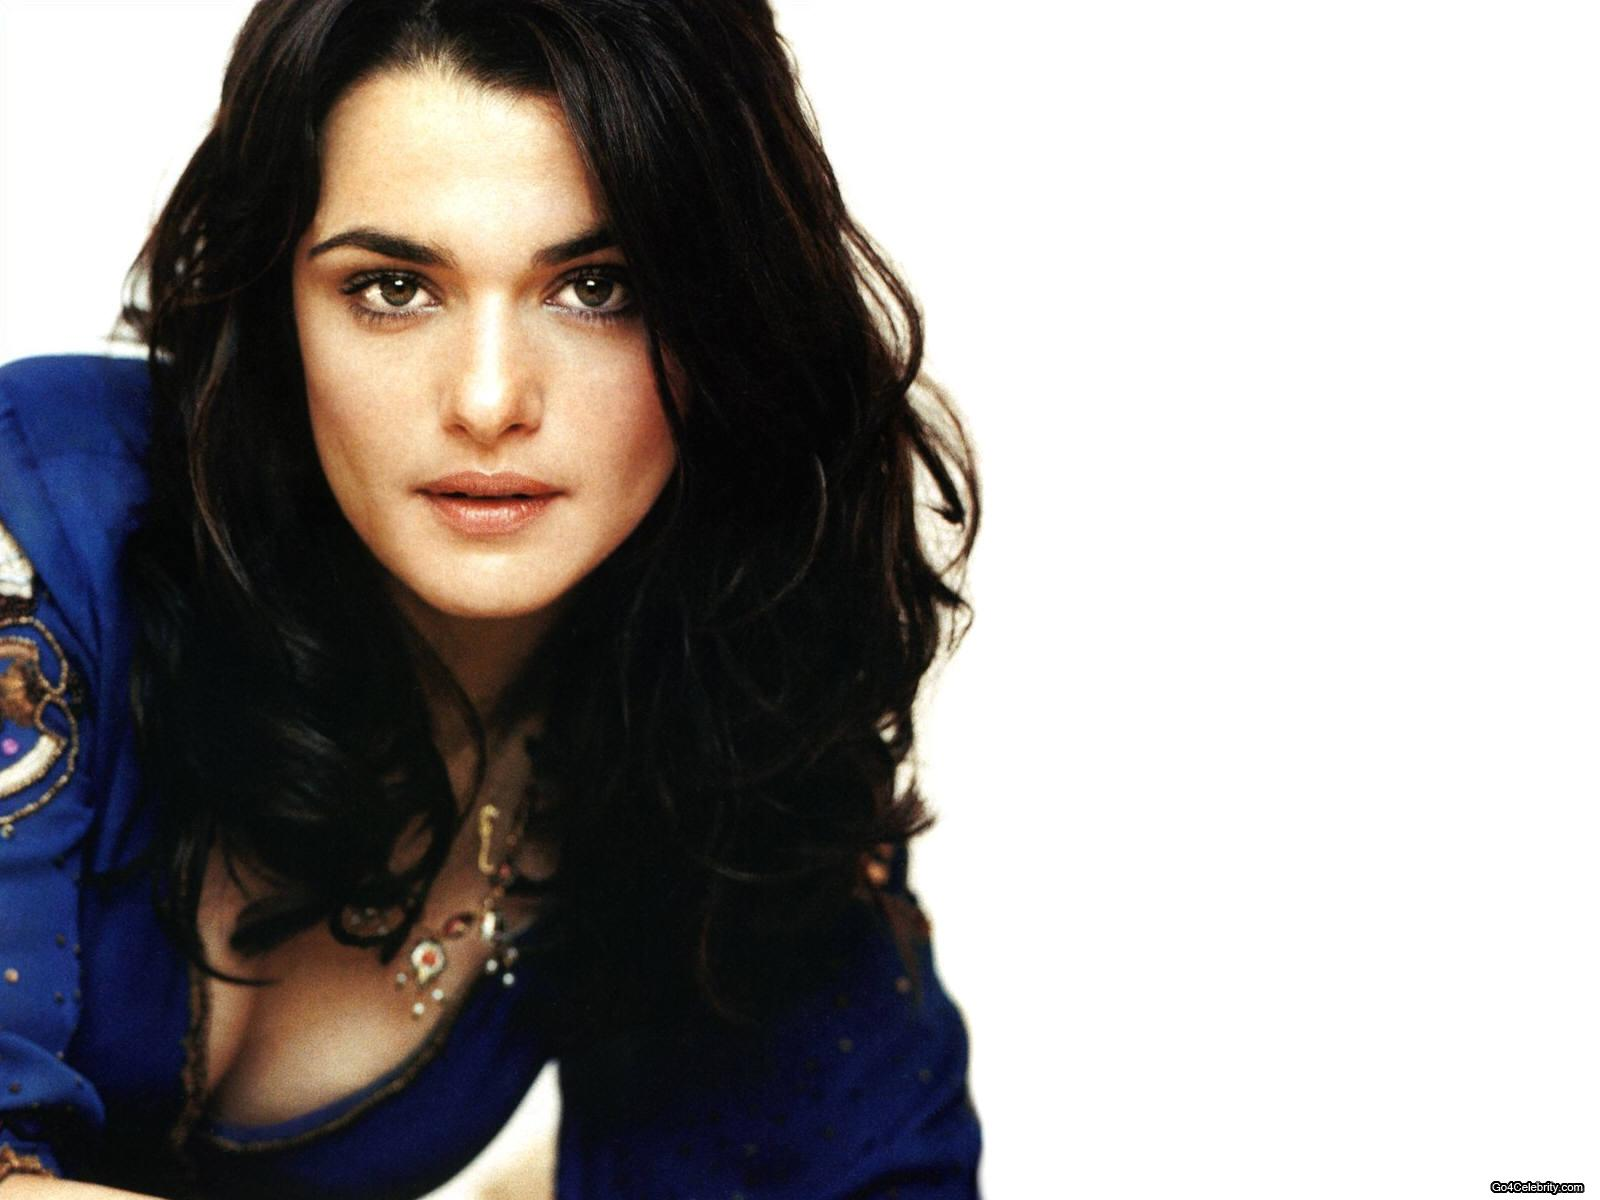 "Rachel Hannah Weisz (pronounced /ˈreɪtʃəl ˈvaɪs/ ""vice""; born 7 March 1970)[1] is an English actress.[2] She gained wide public recognition after her ..."